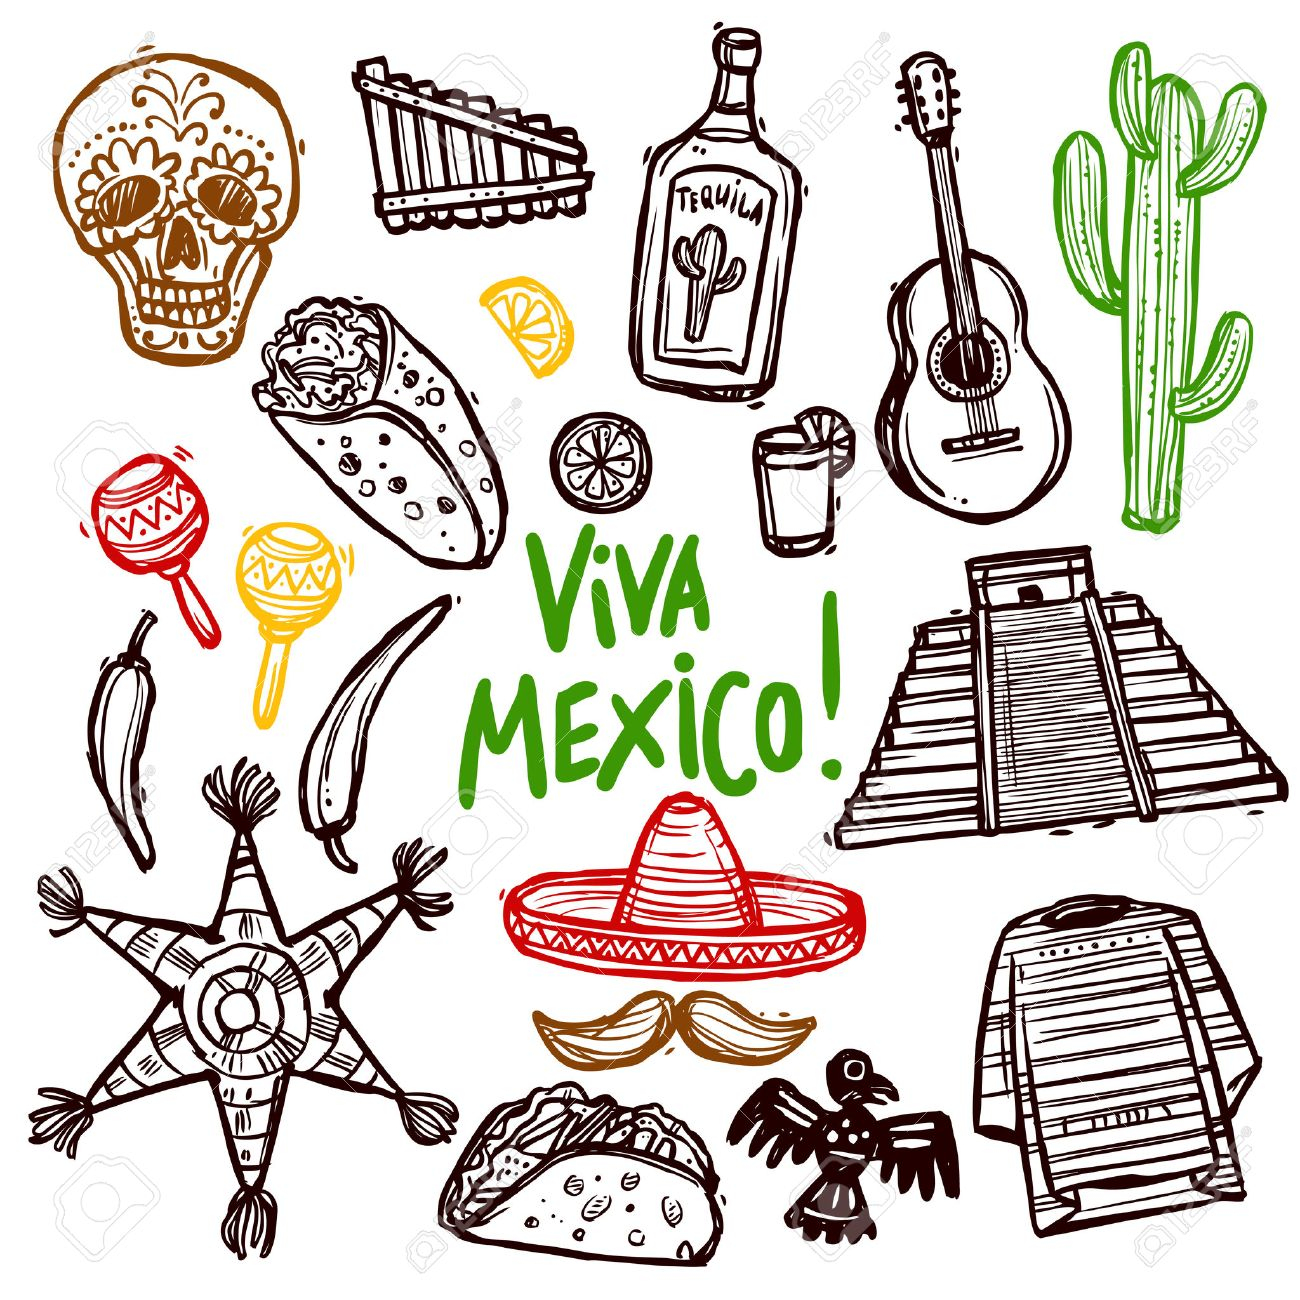 Mexico Doodle Icons Set With Hand Drawn Food And Culture Symbols